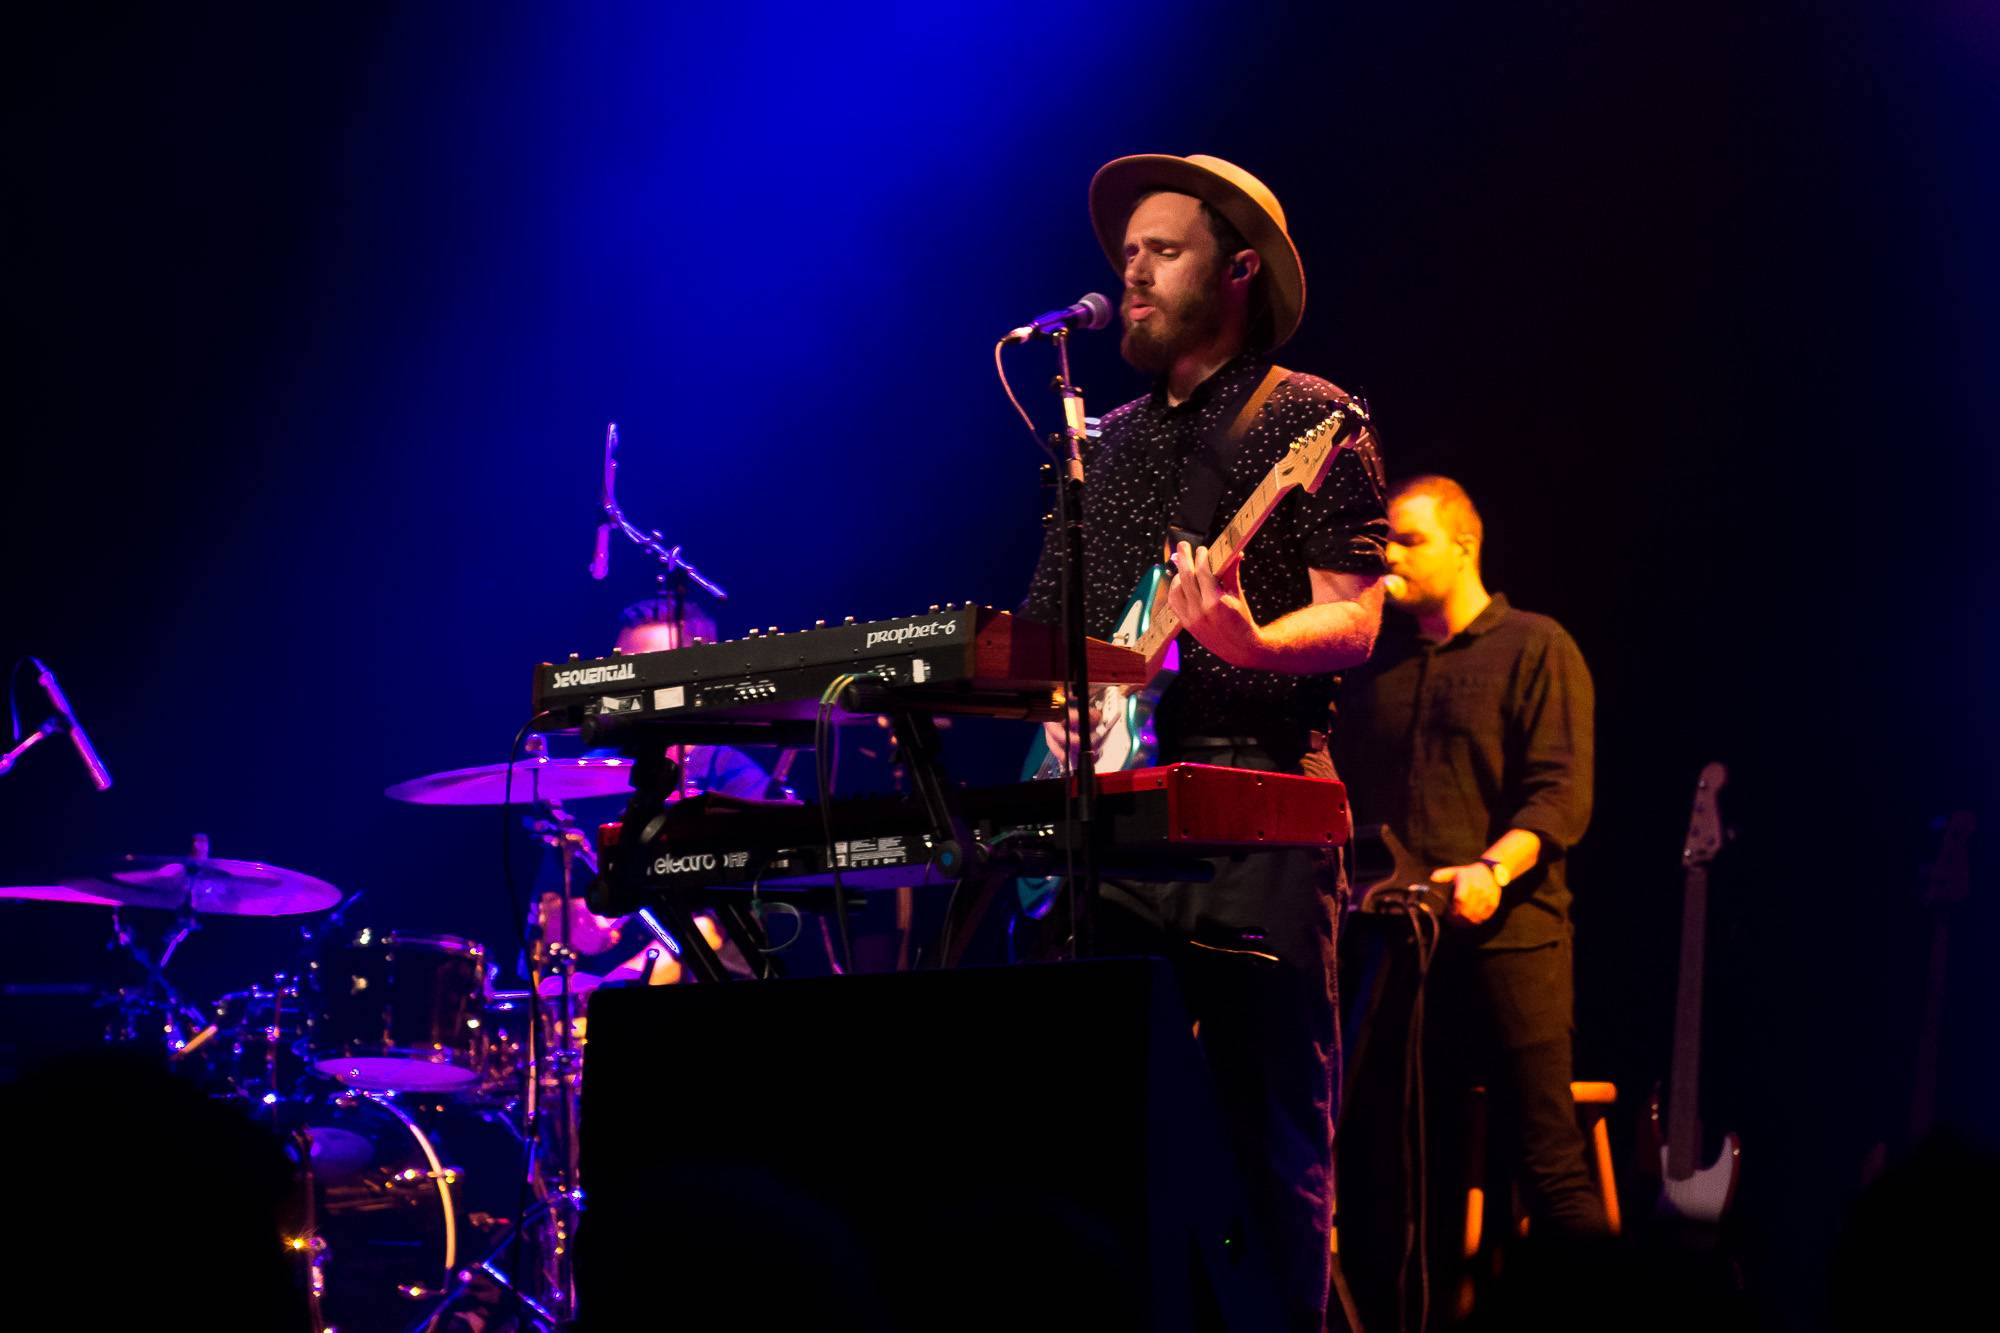 James Vincent McMorrow at the Vogue Theatre, Vancouver, Aug 15 2017. Jessica Vandergulik photo.